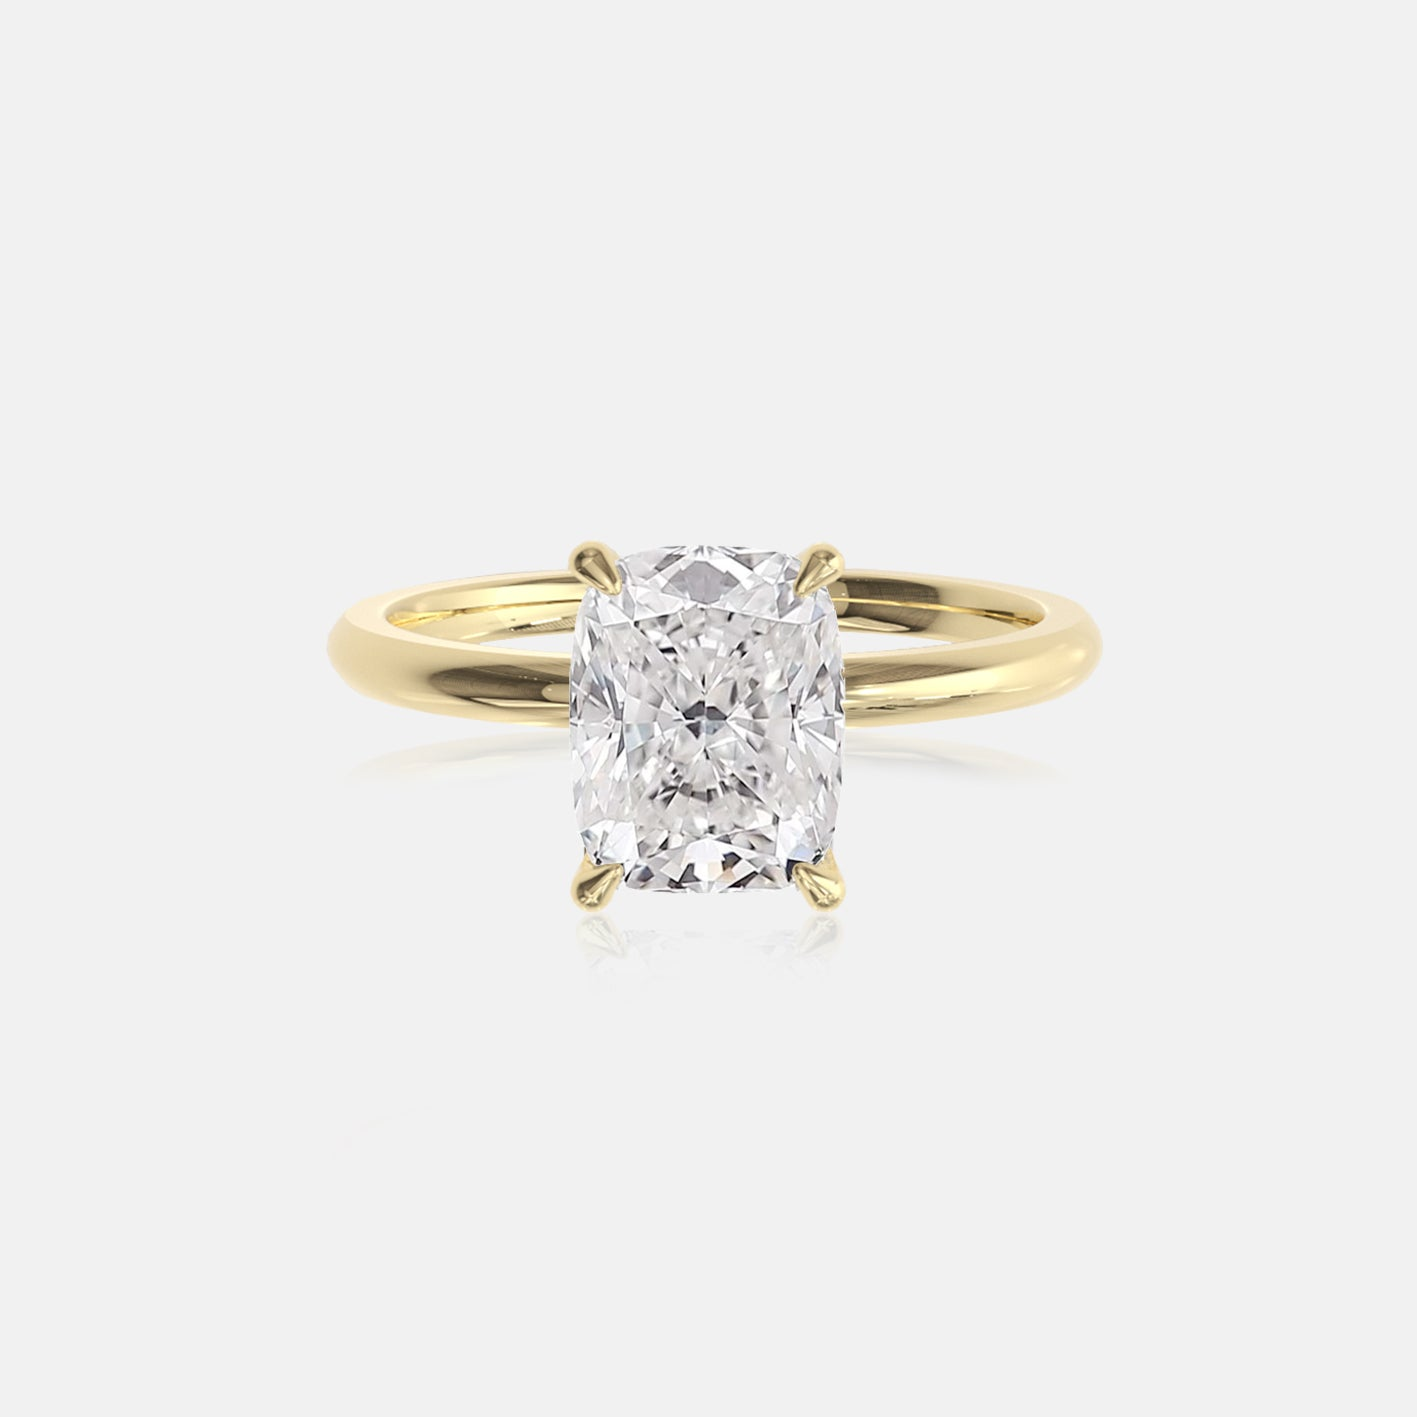 Elongated Cushion Moissanite Ceremonial Solitaire